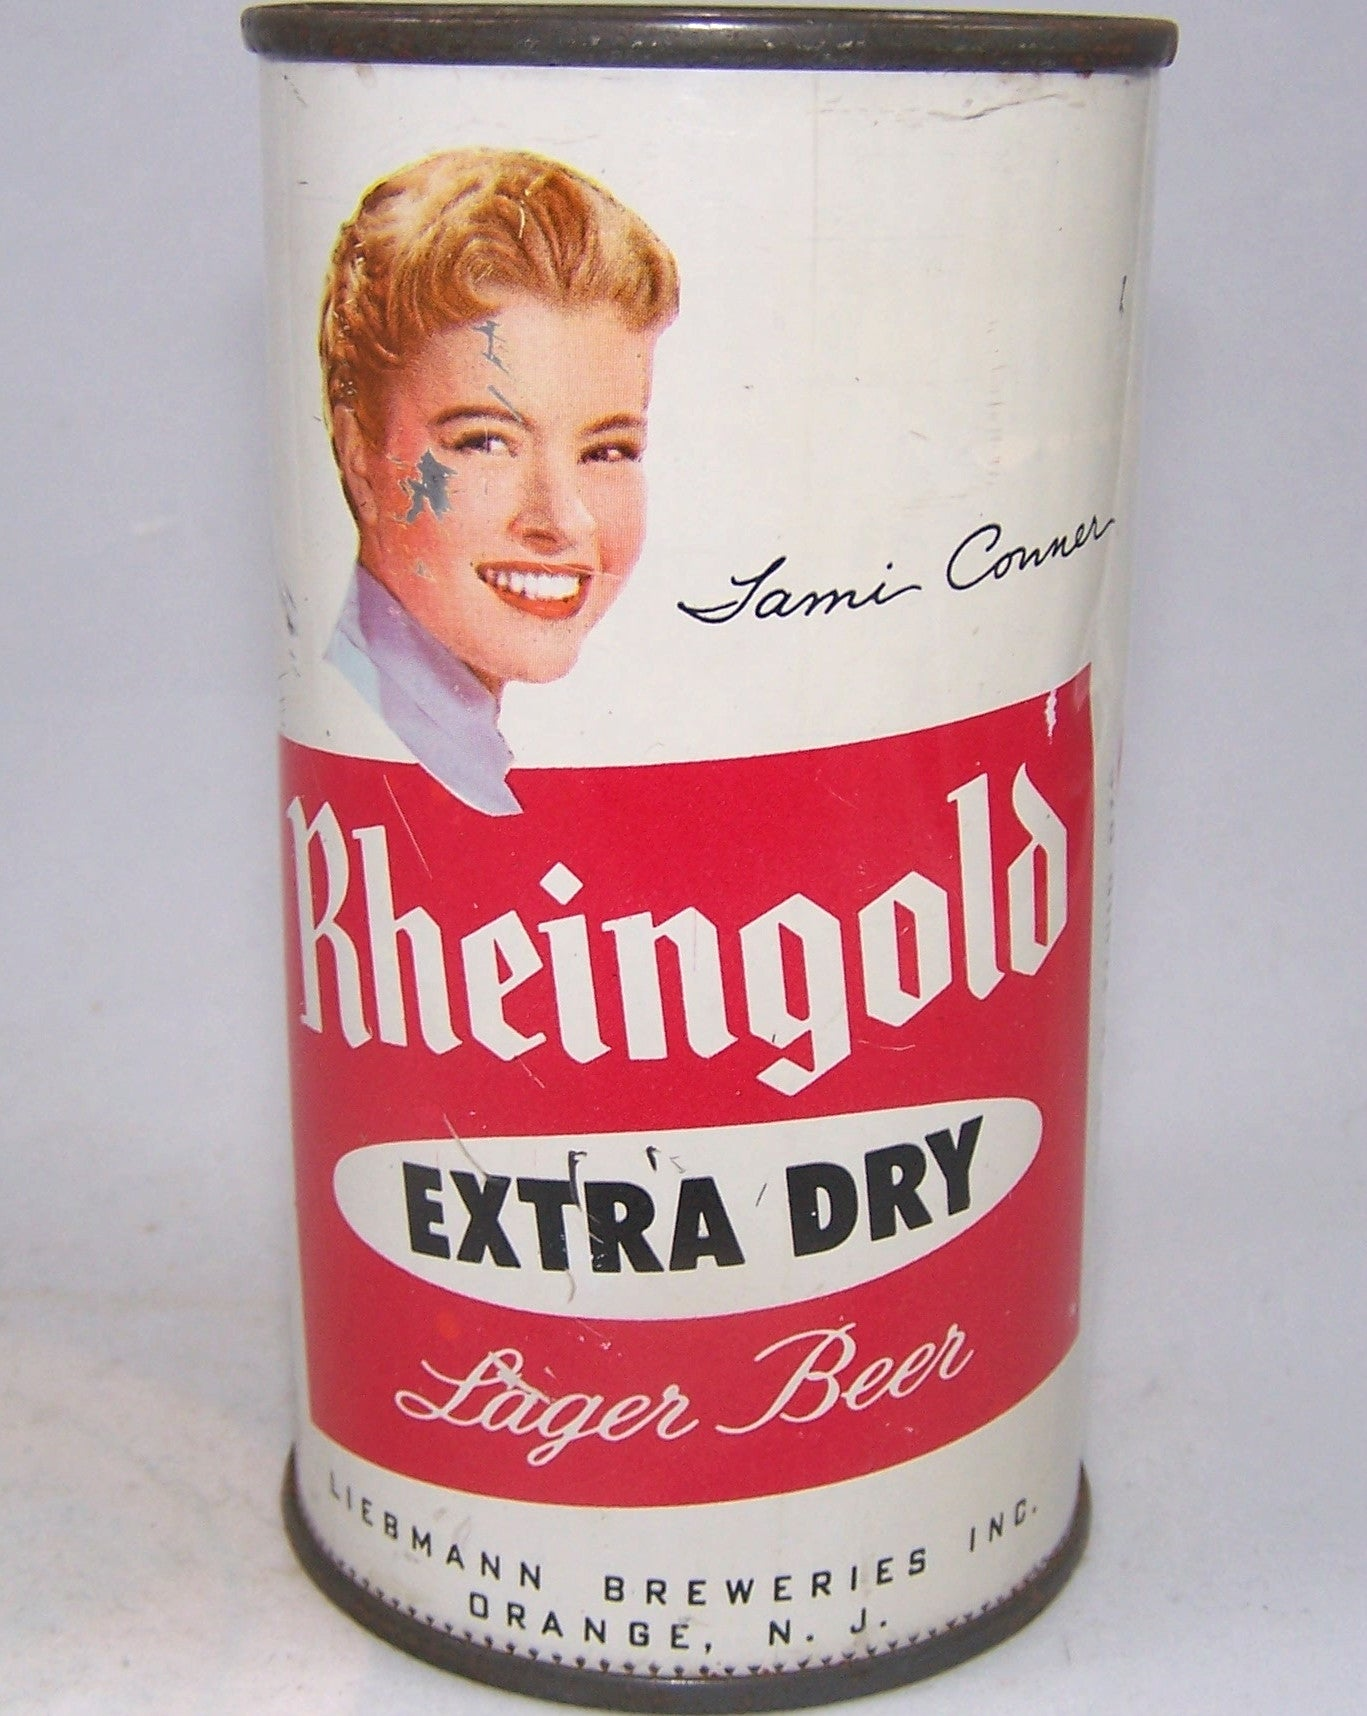 Rheingold Extra Dry (Tami Conner) New Jersey, USBC 123-11, Grade 1/1-  Sold on 06/18/16